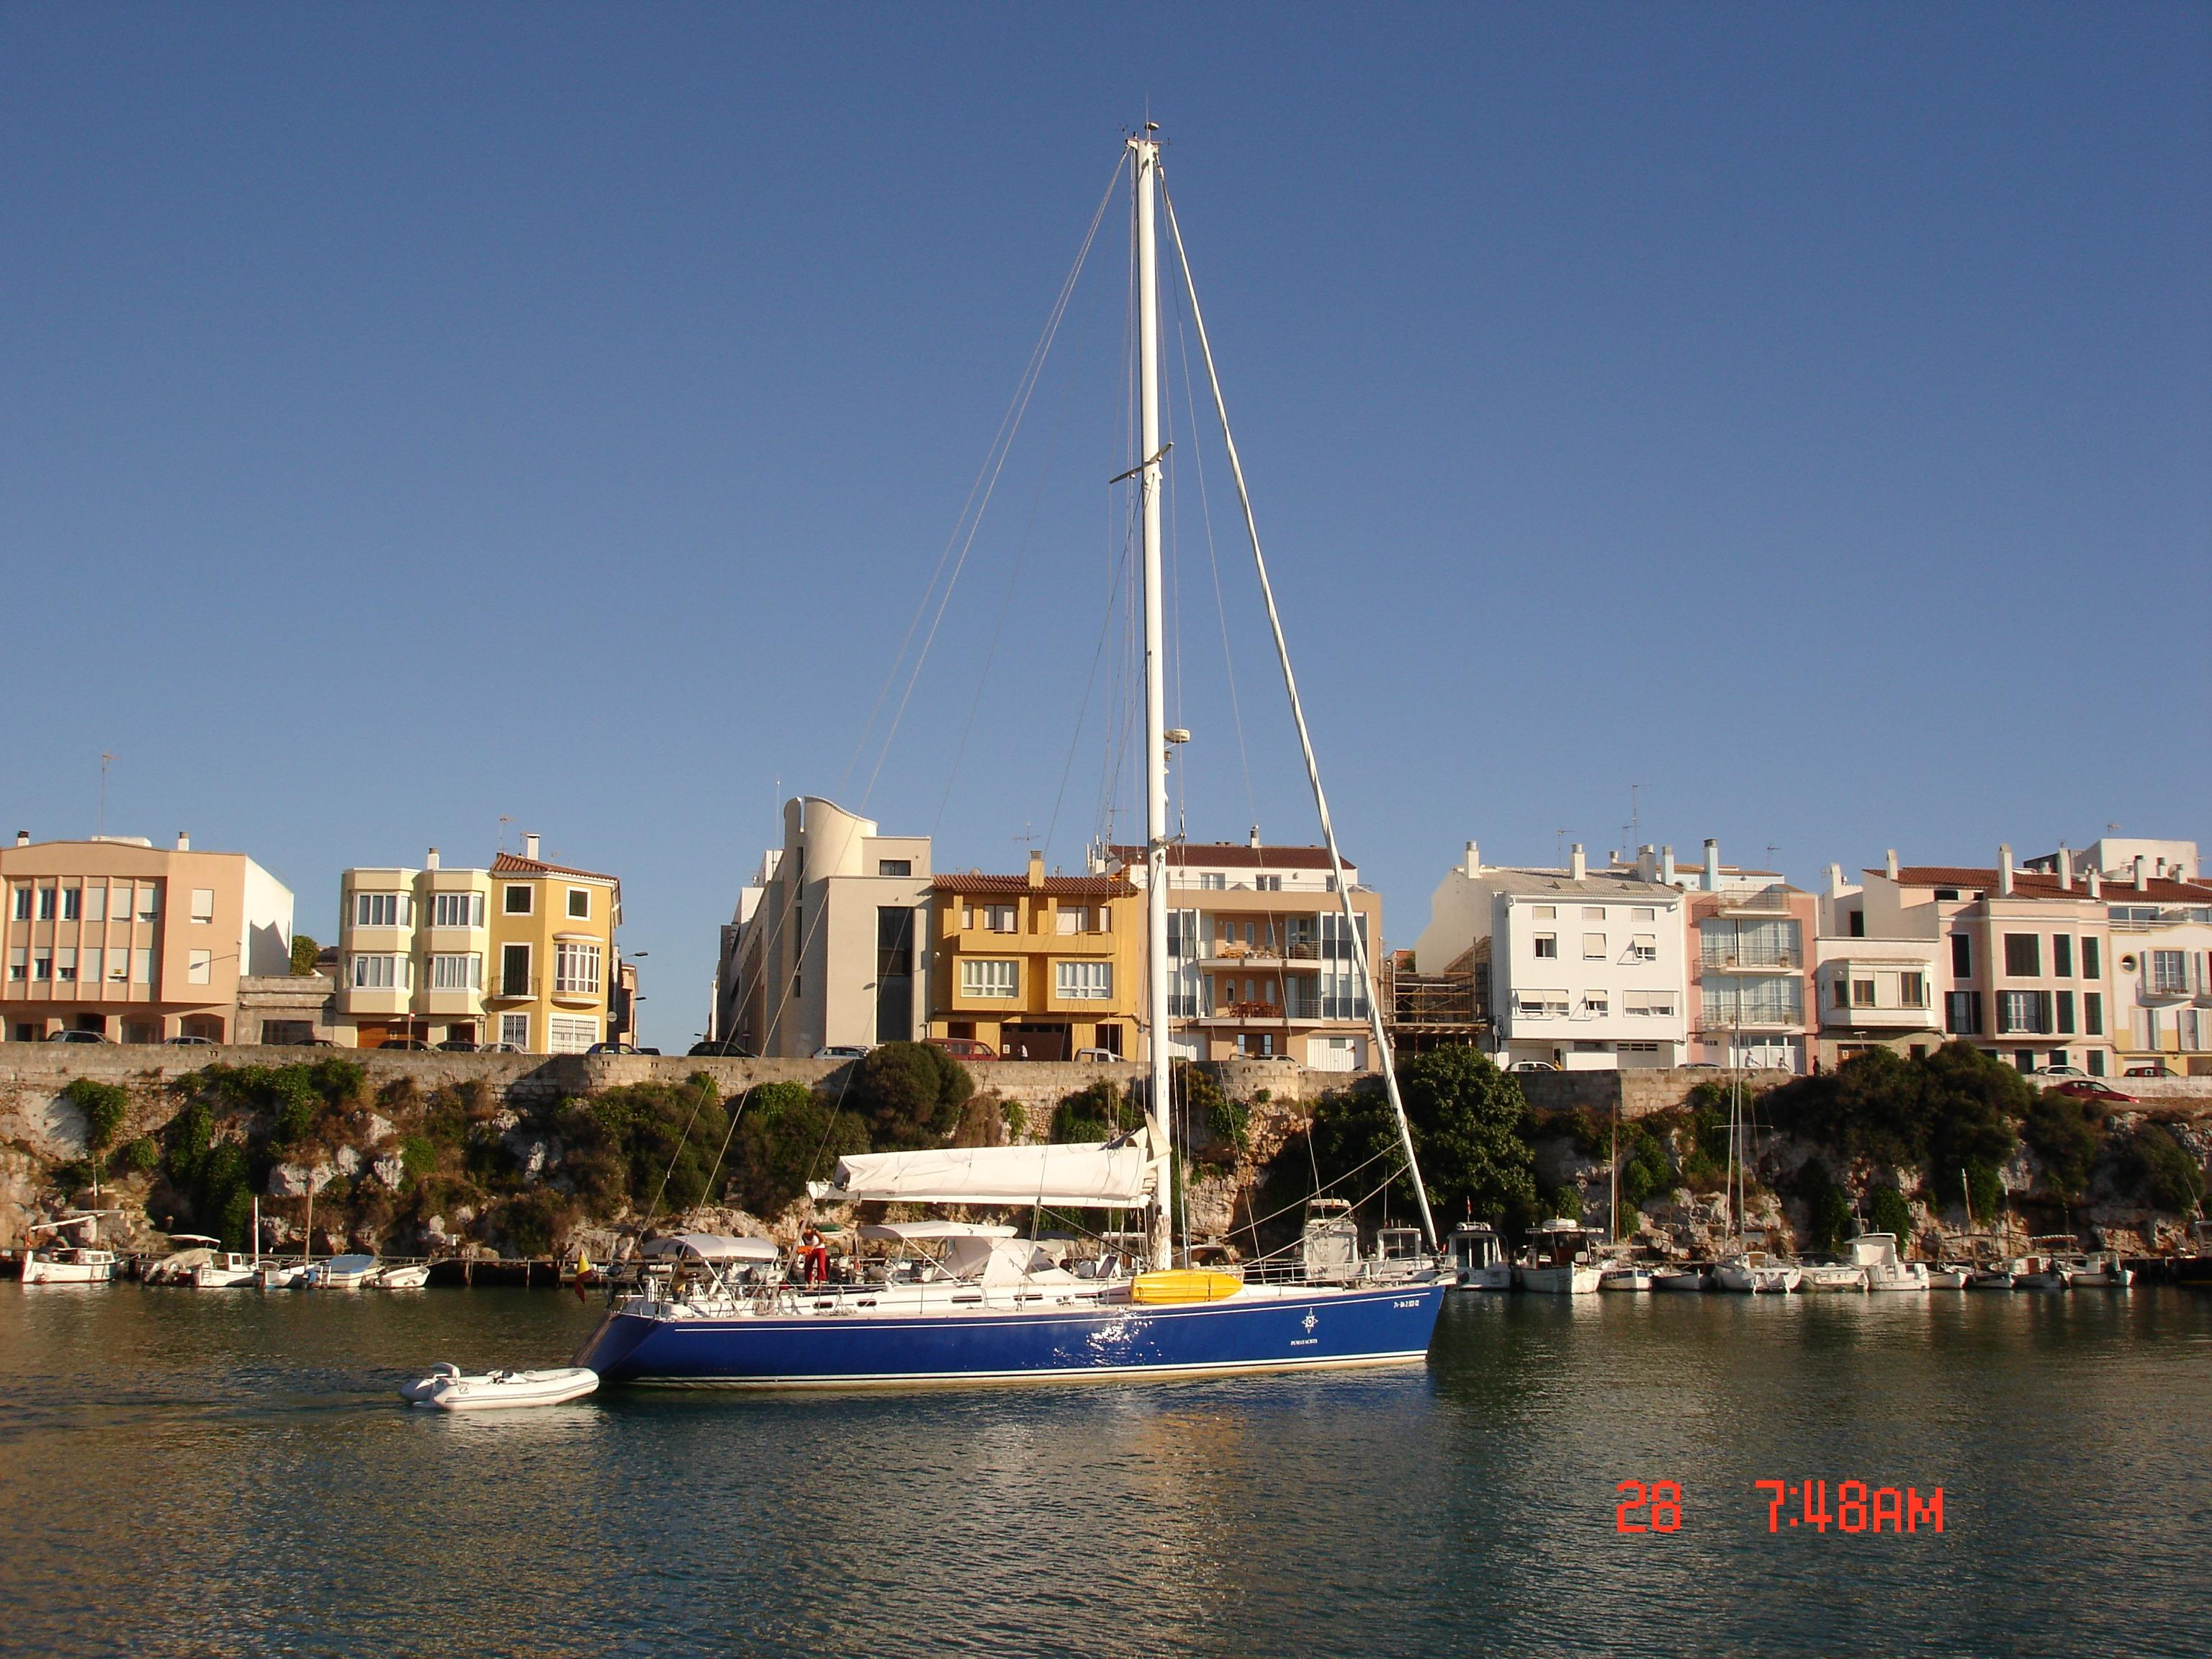 2002 CUBIC 70 COSTA NORD Cubic 70 Sail Boat For Sale